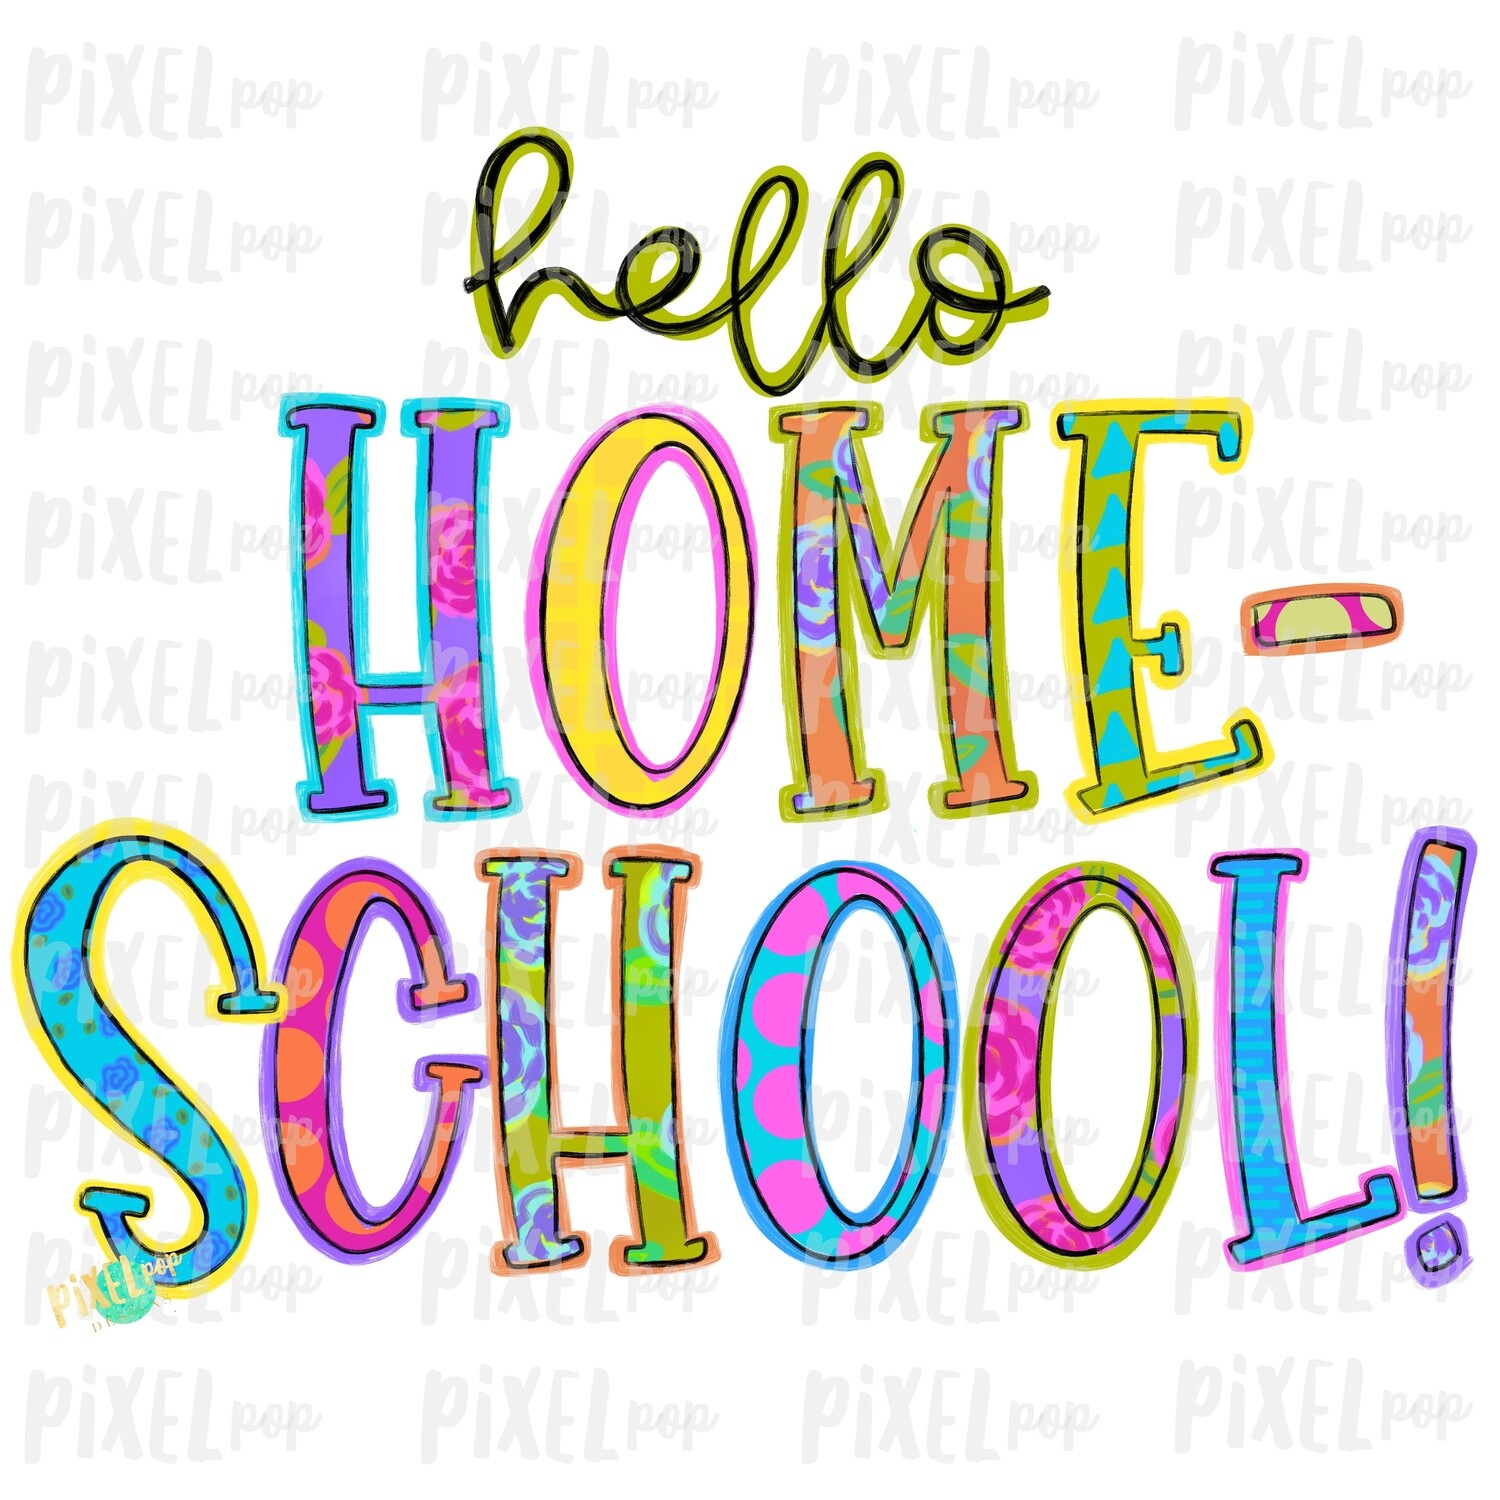 Hello Homeschool Bright PNG Design | School Design | Sublimation | Digital Art | Hand Painted | Digital Download | Printable Artwork | Art